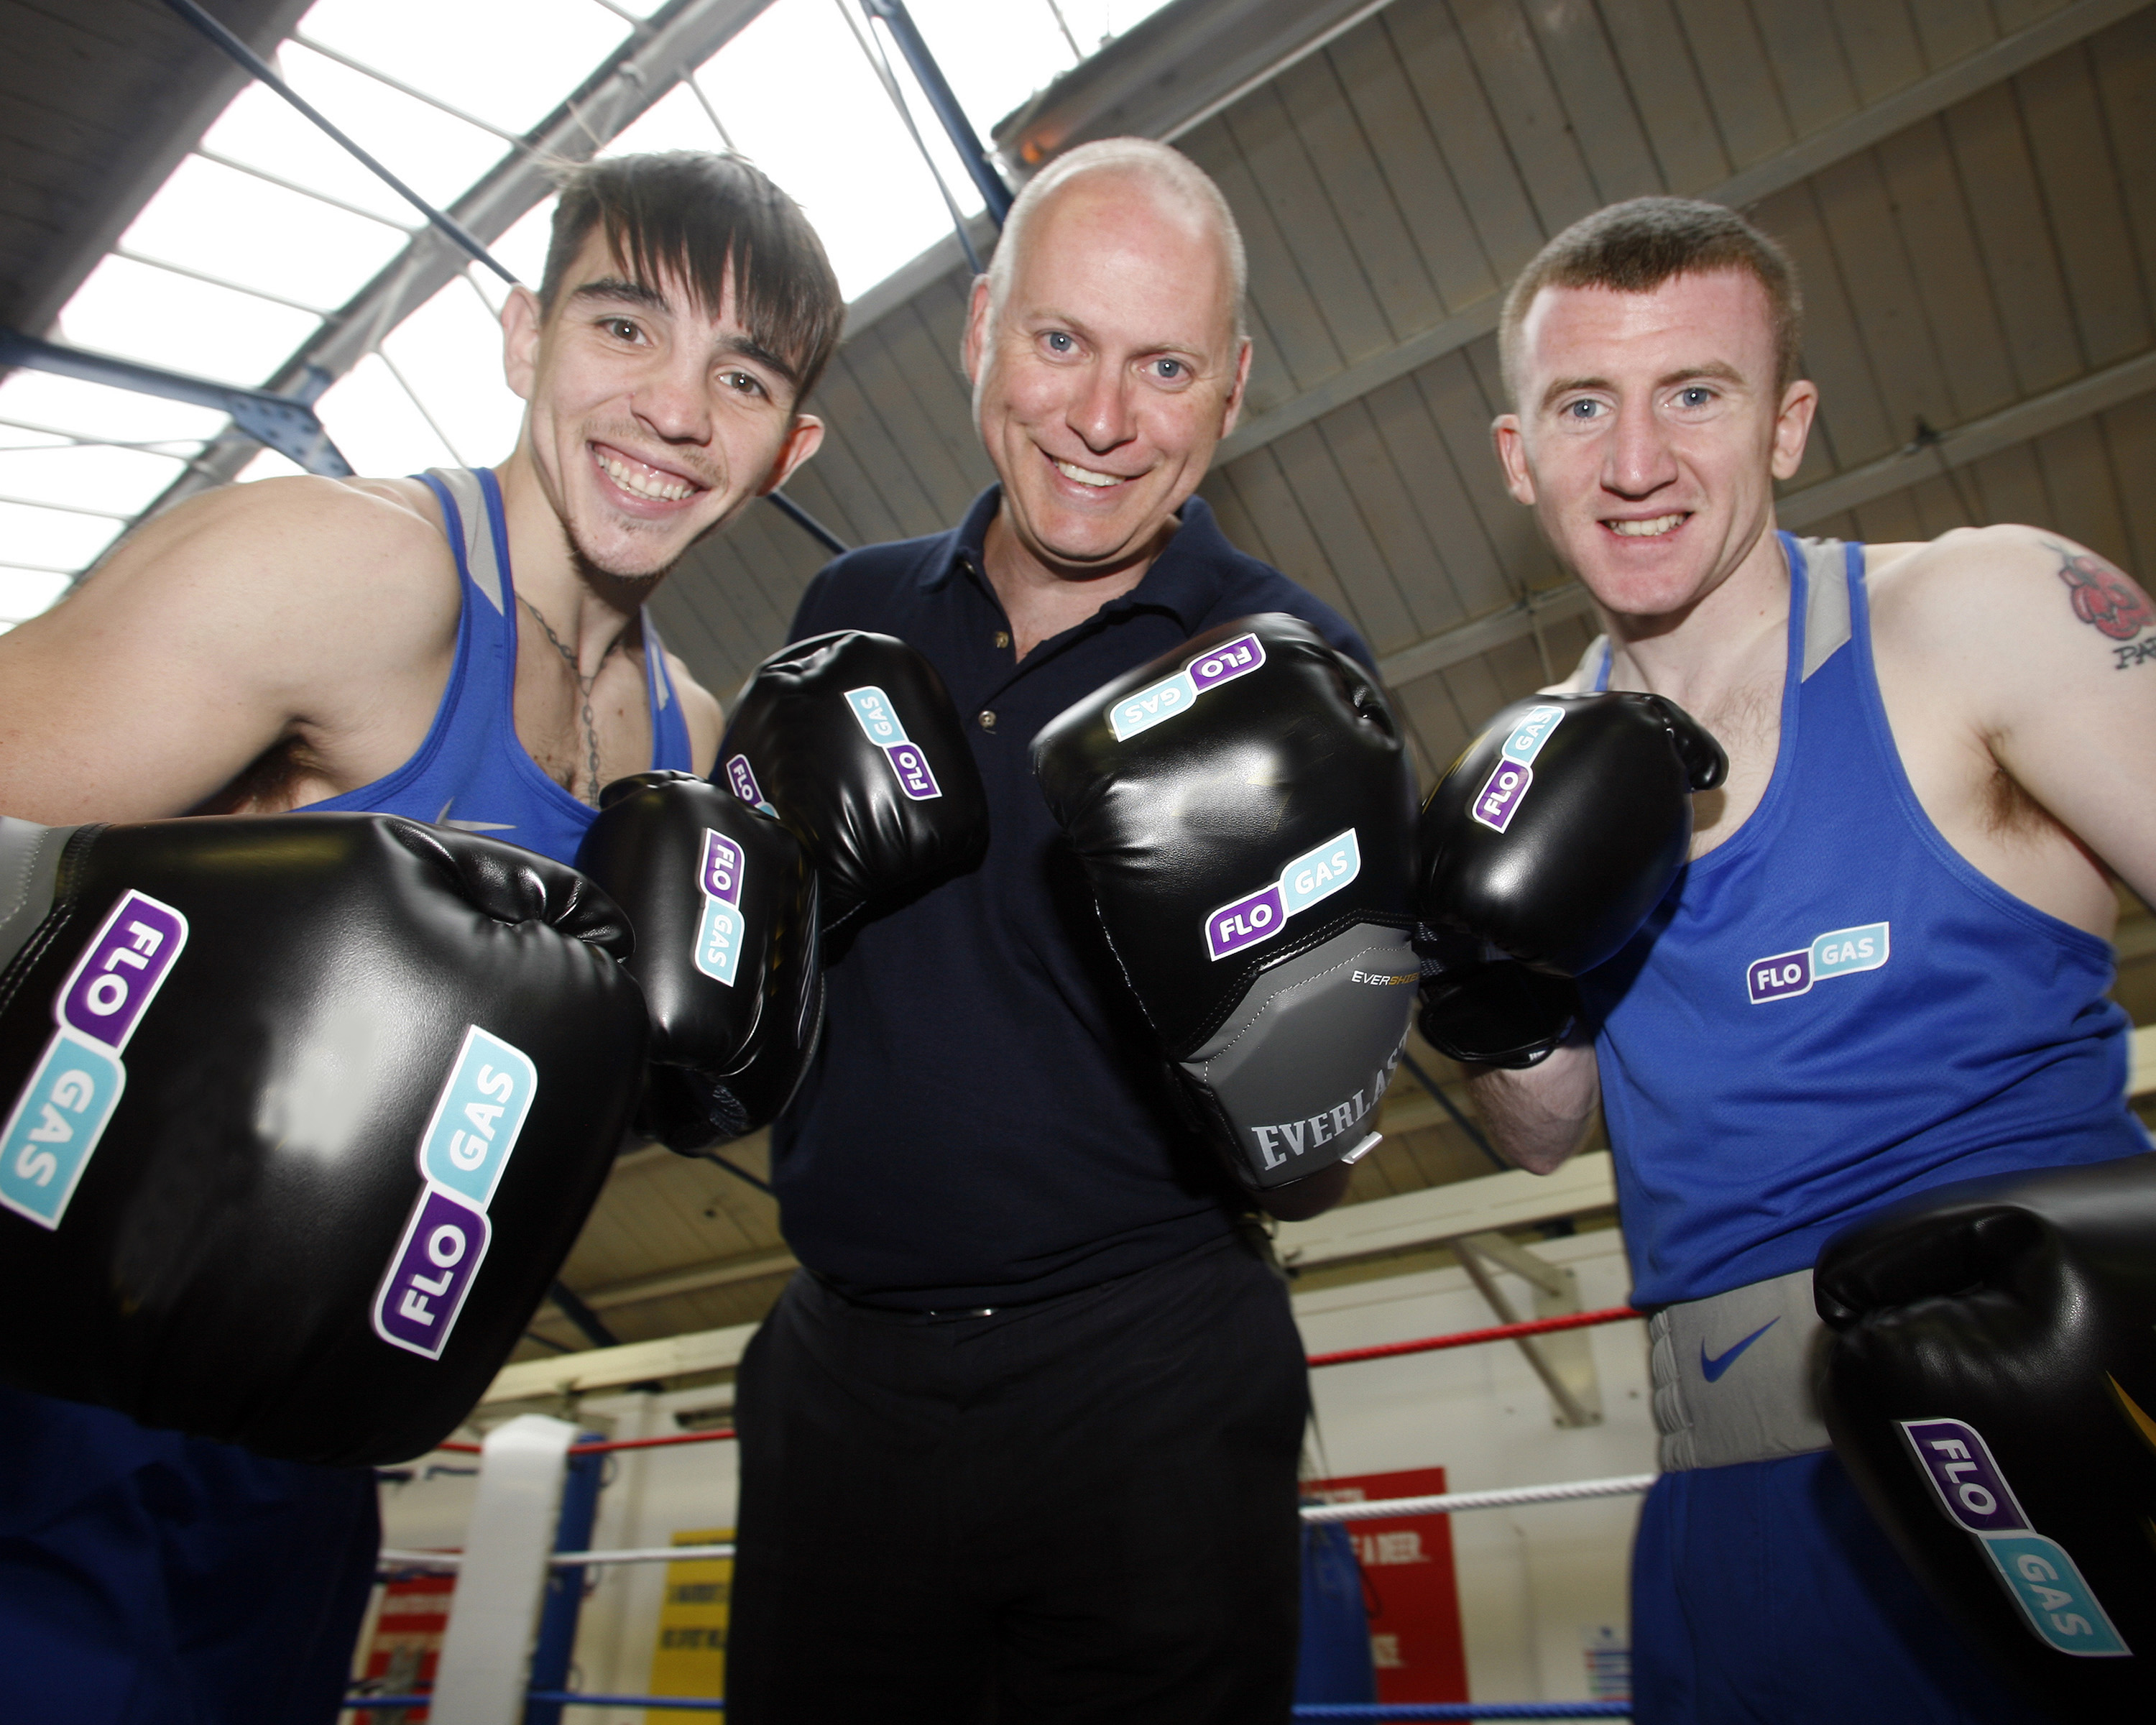 Flogas Sponsor Boxers Michael Conlan and Paddy Barnes